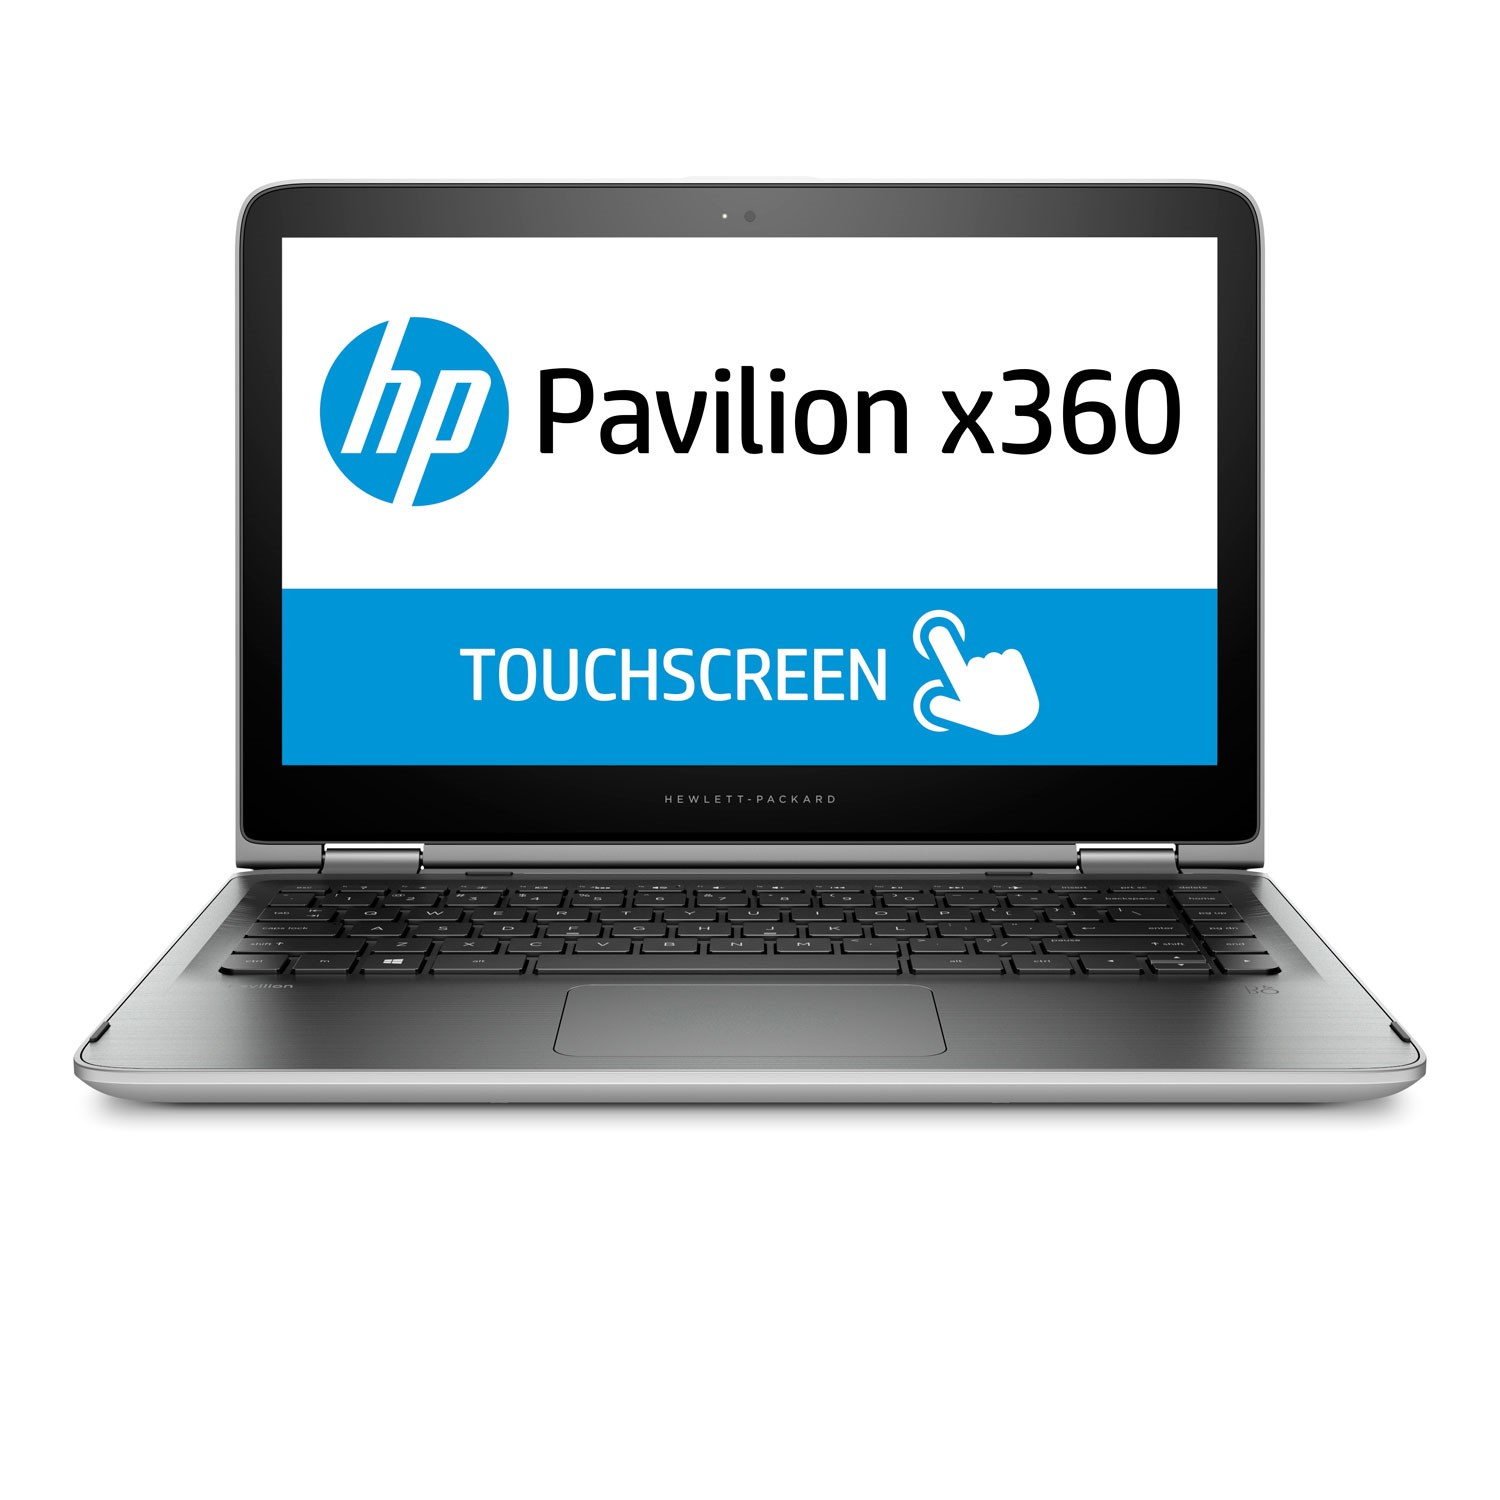 HP Pavilion - 13.3 inches - Convertible 2 in 1 - Core i3-6100U - 4GB RAM - 500GB HDD - Windows 10 Home - Silver - 13-s120nr